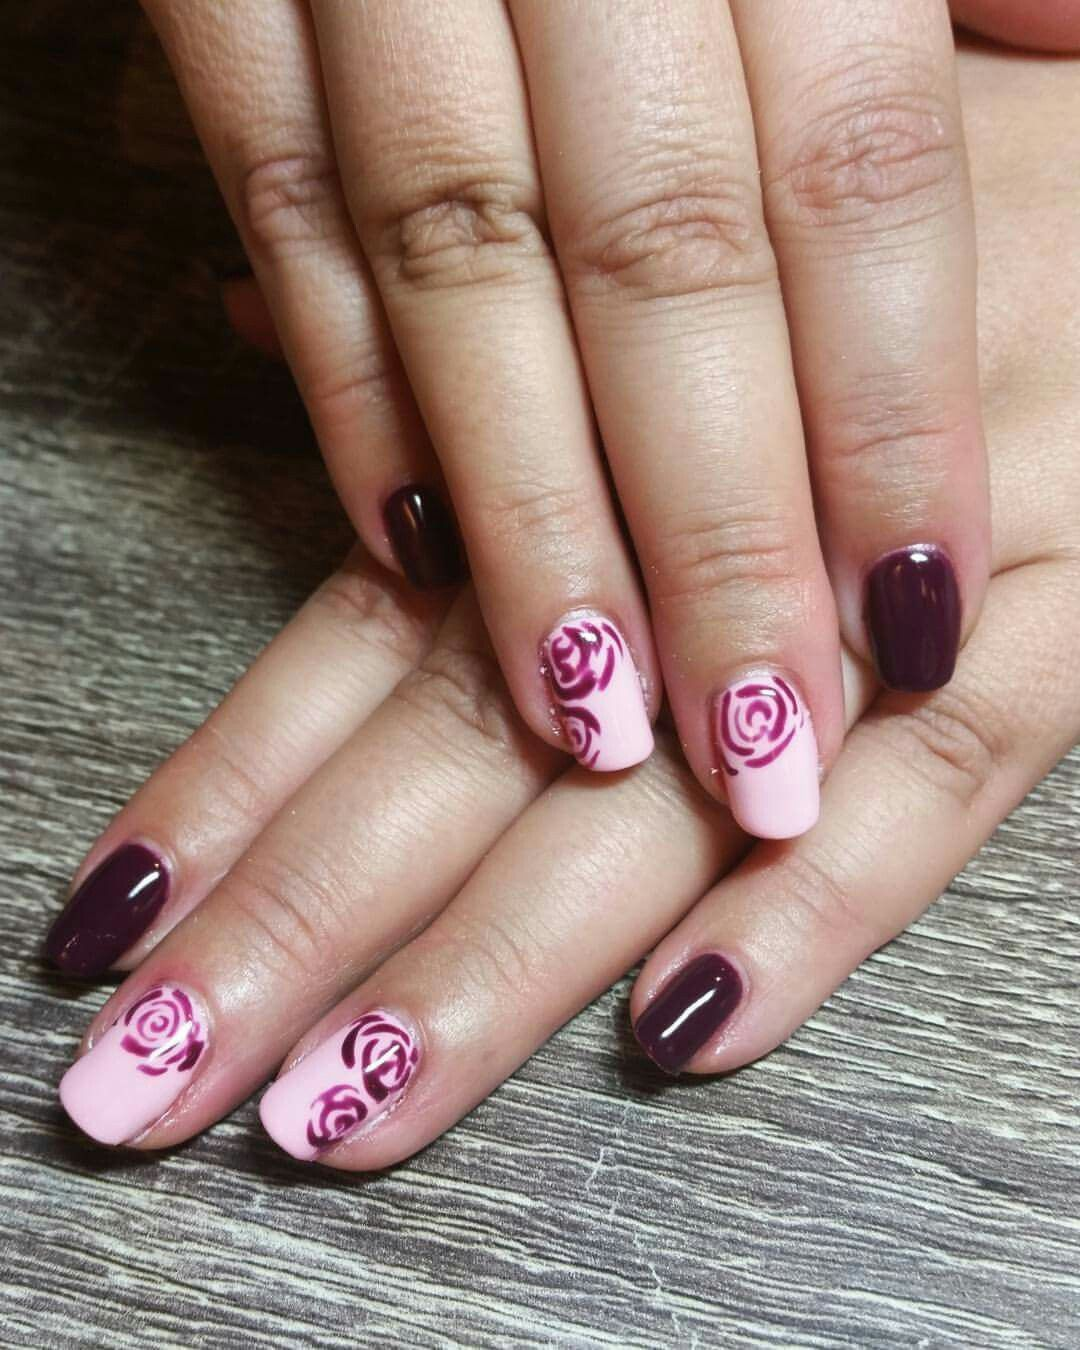 Pale pink and dark purple nails. Pale pink with roses. Rose nail art ...